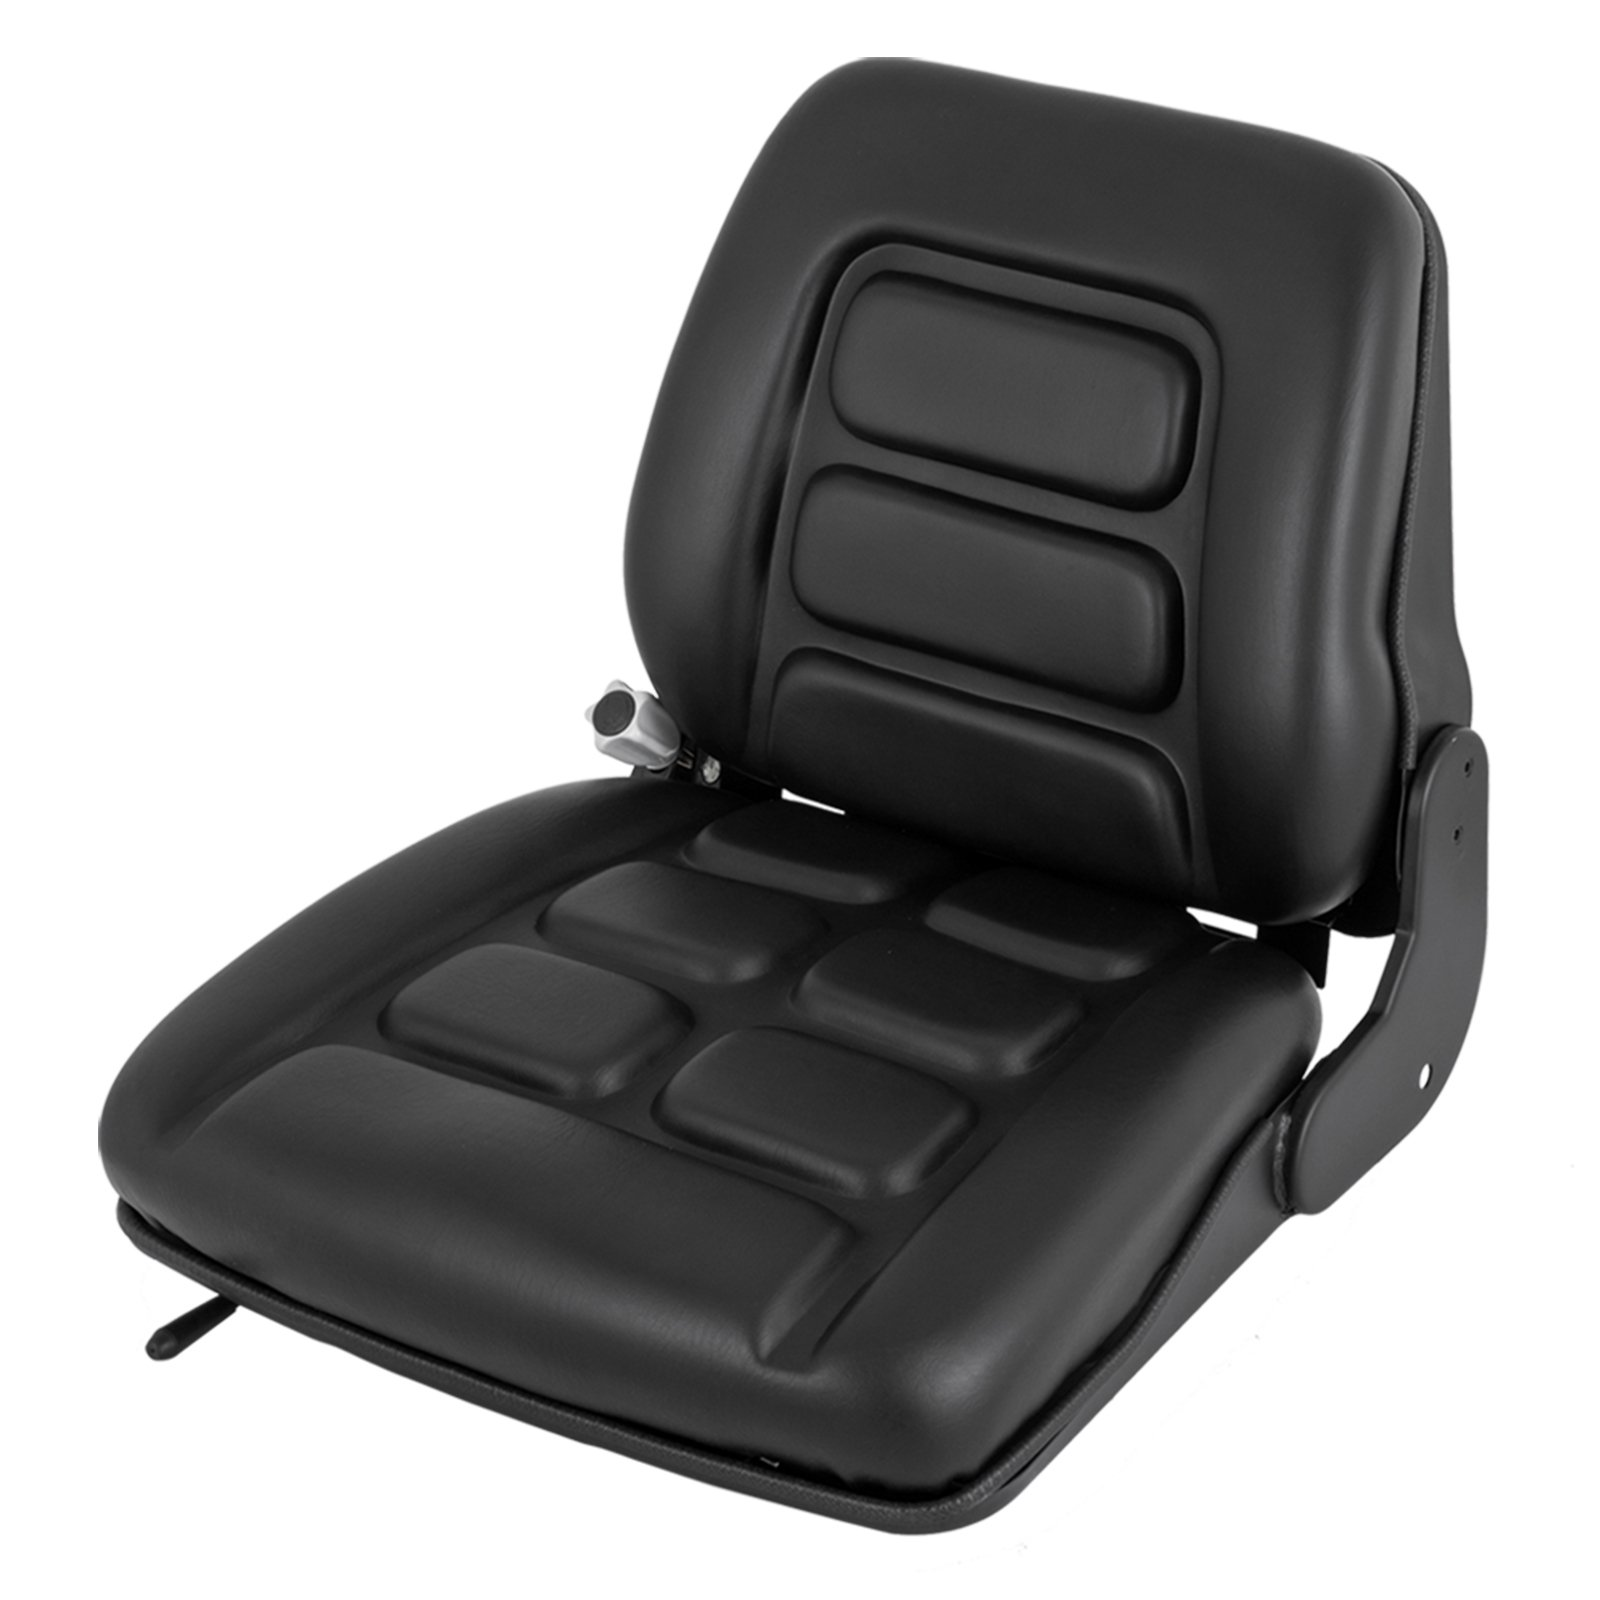 Happybuy Universail Forklift Seat Suspension Seat Vinyl Forklift Suspension Seat Adjustable (3-Stage for Toyota) by Happybuy